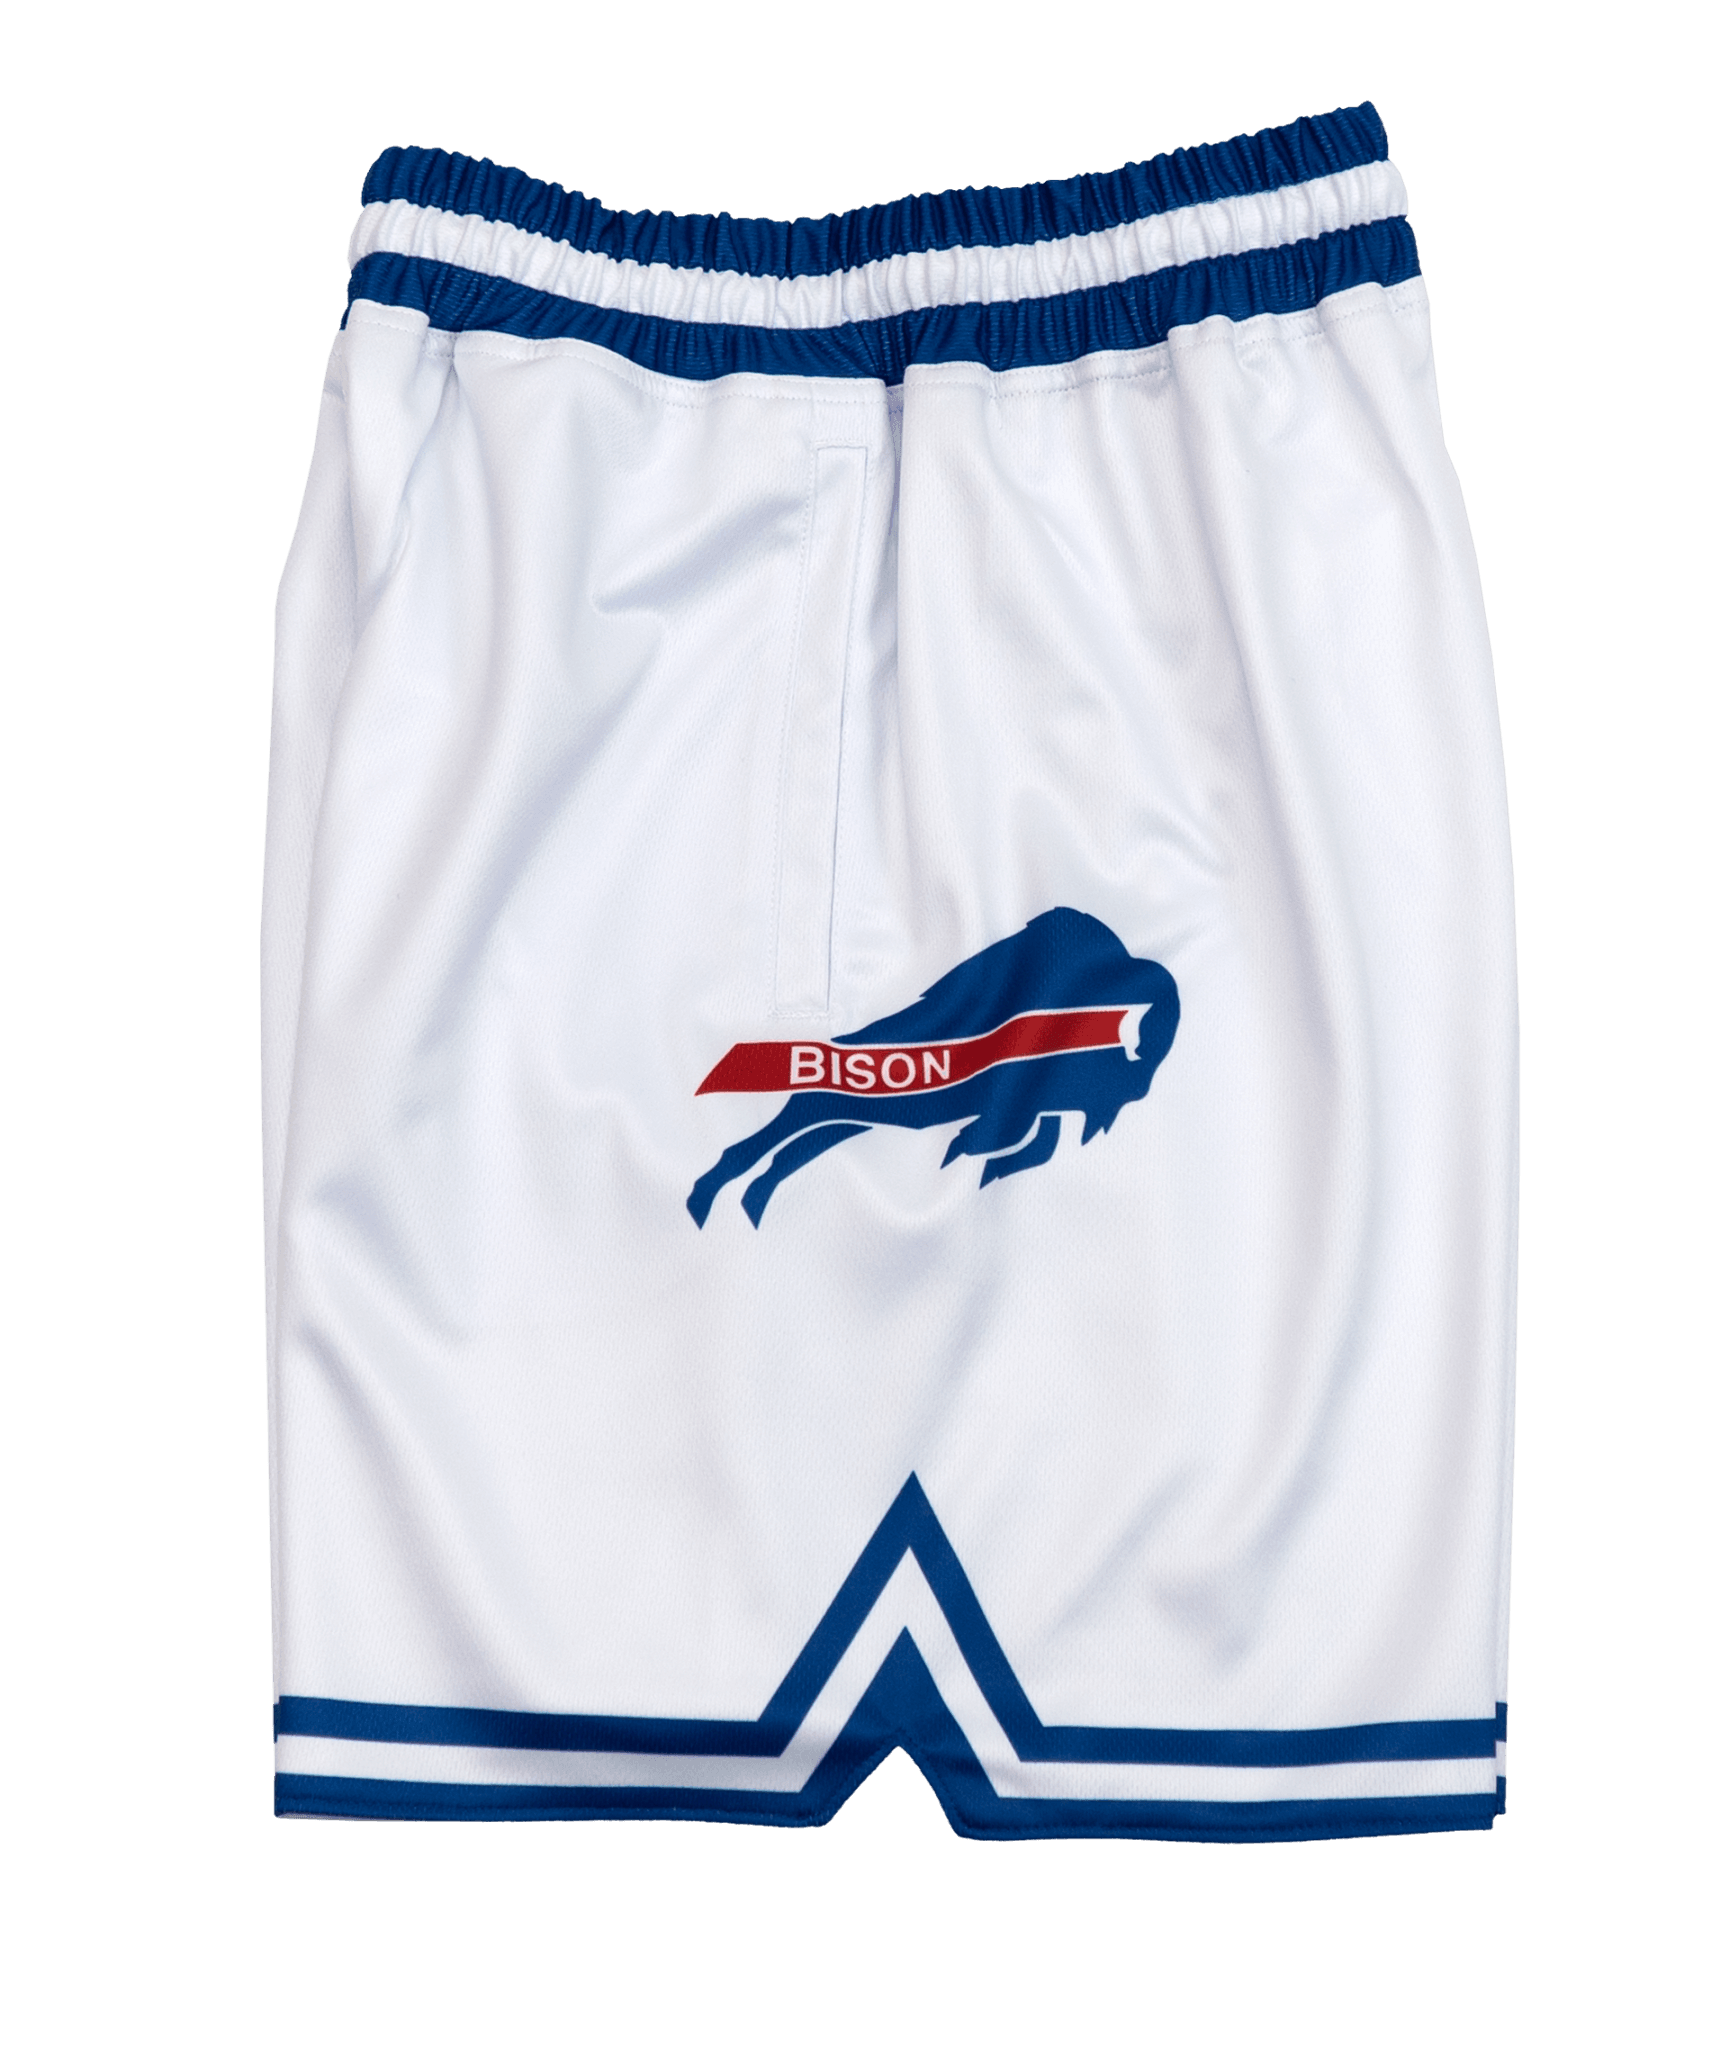 Howard Bison 1991-1992 Retro Shorts - SLAM